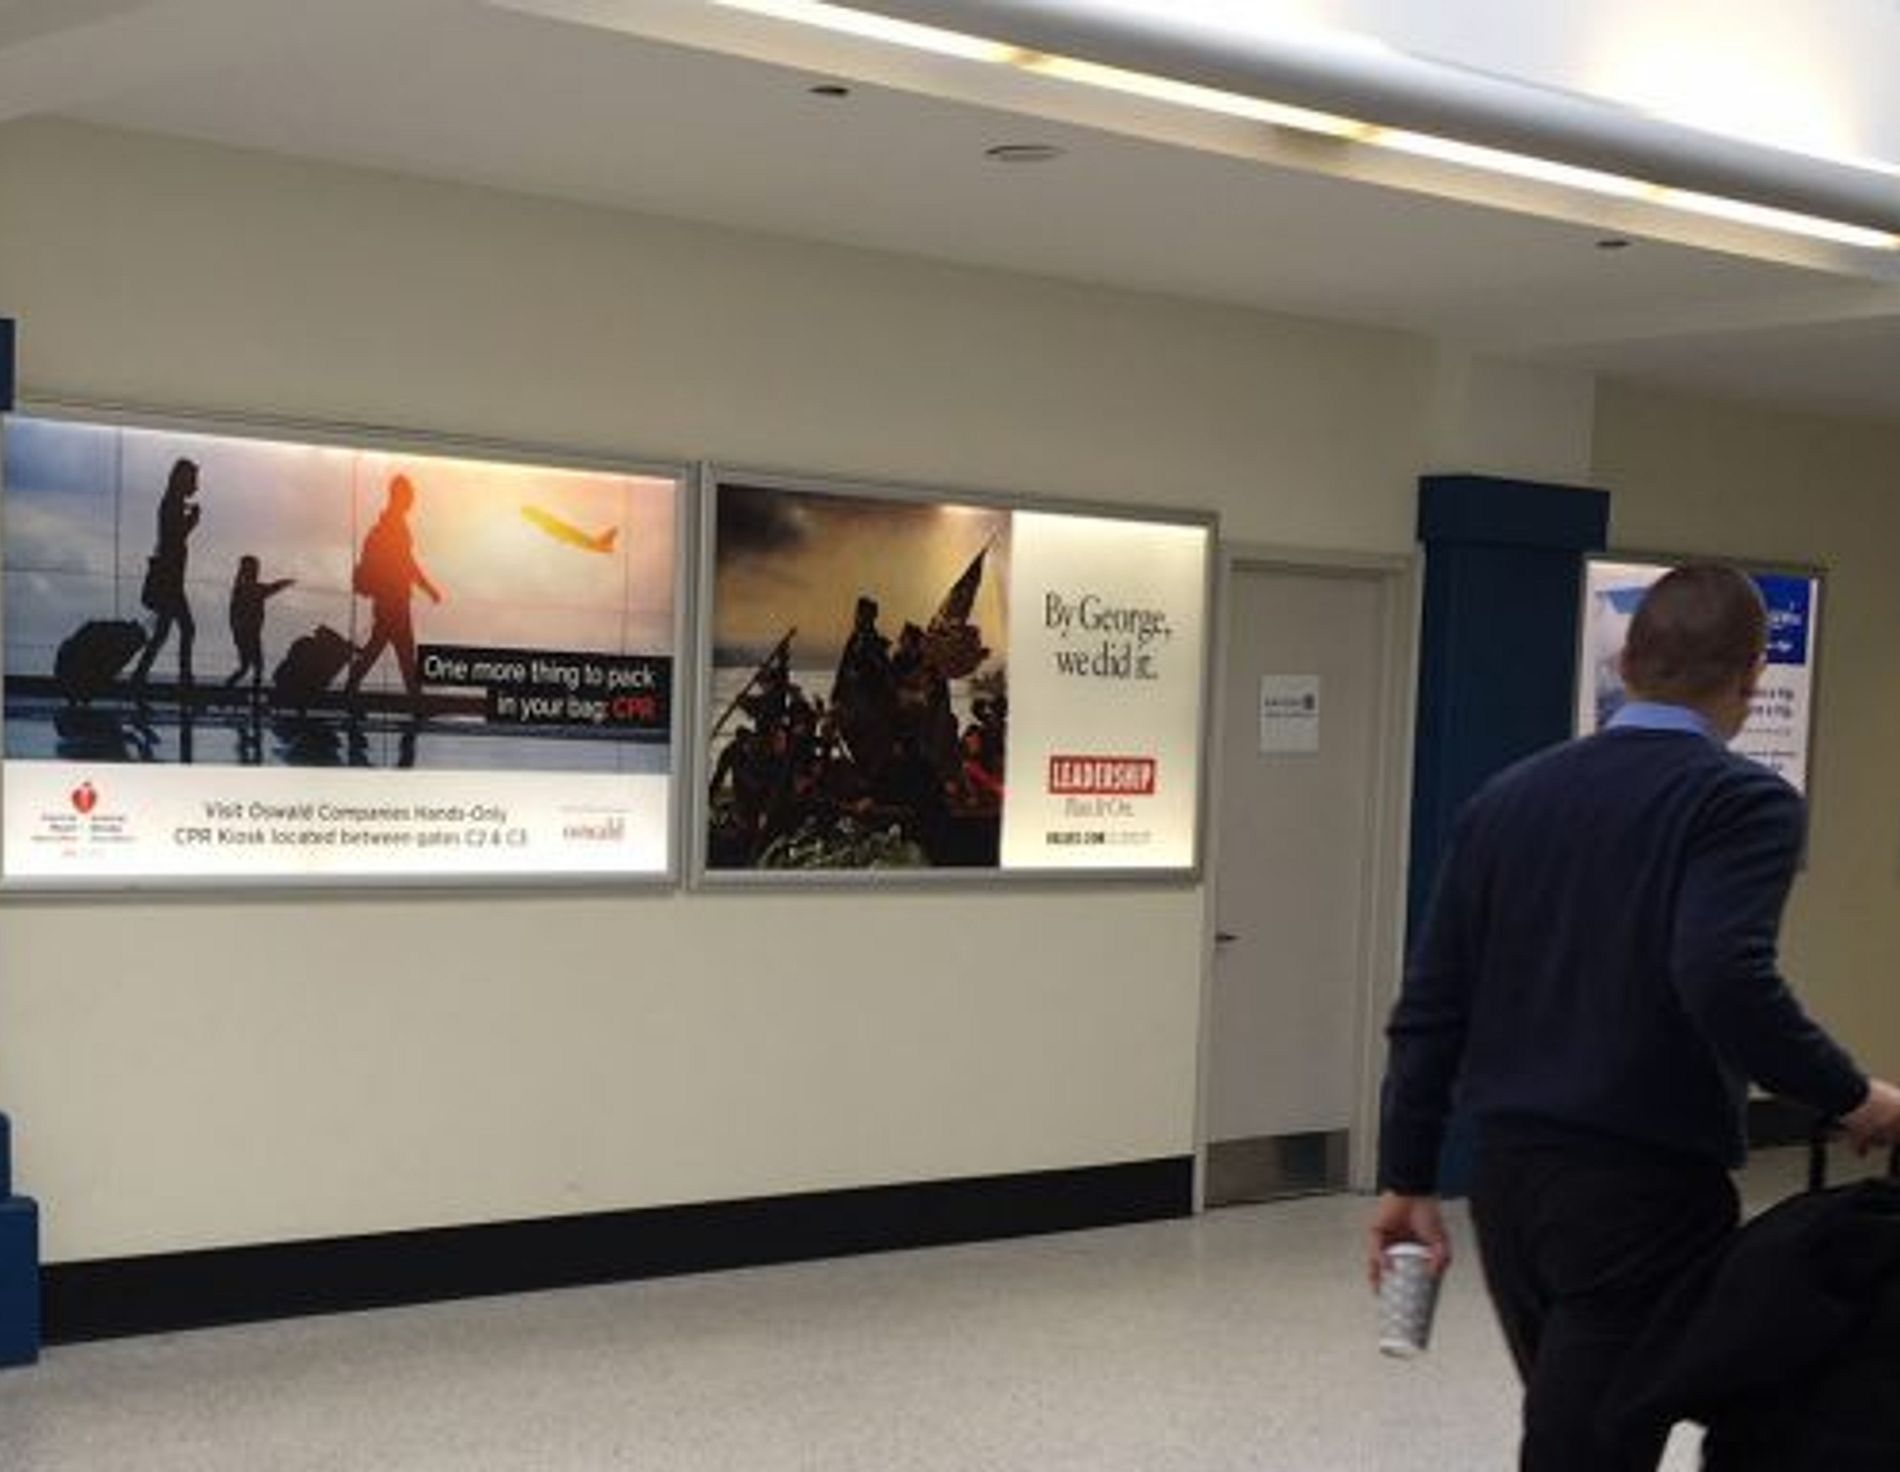 Oswald advertisement at the Cleveland airport